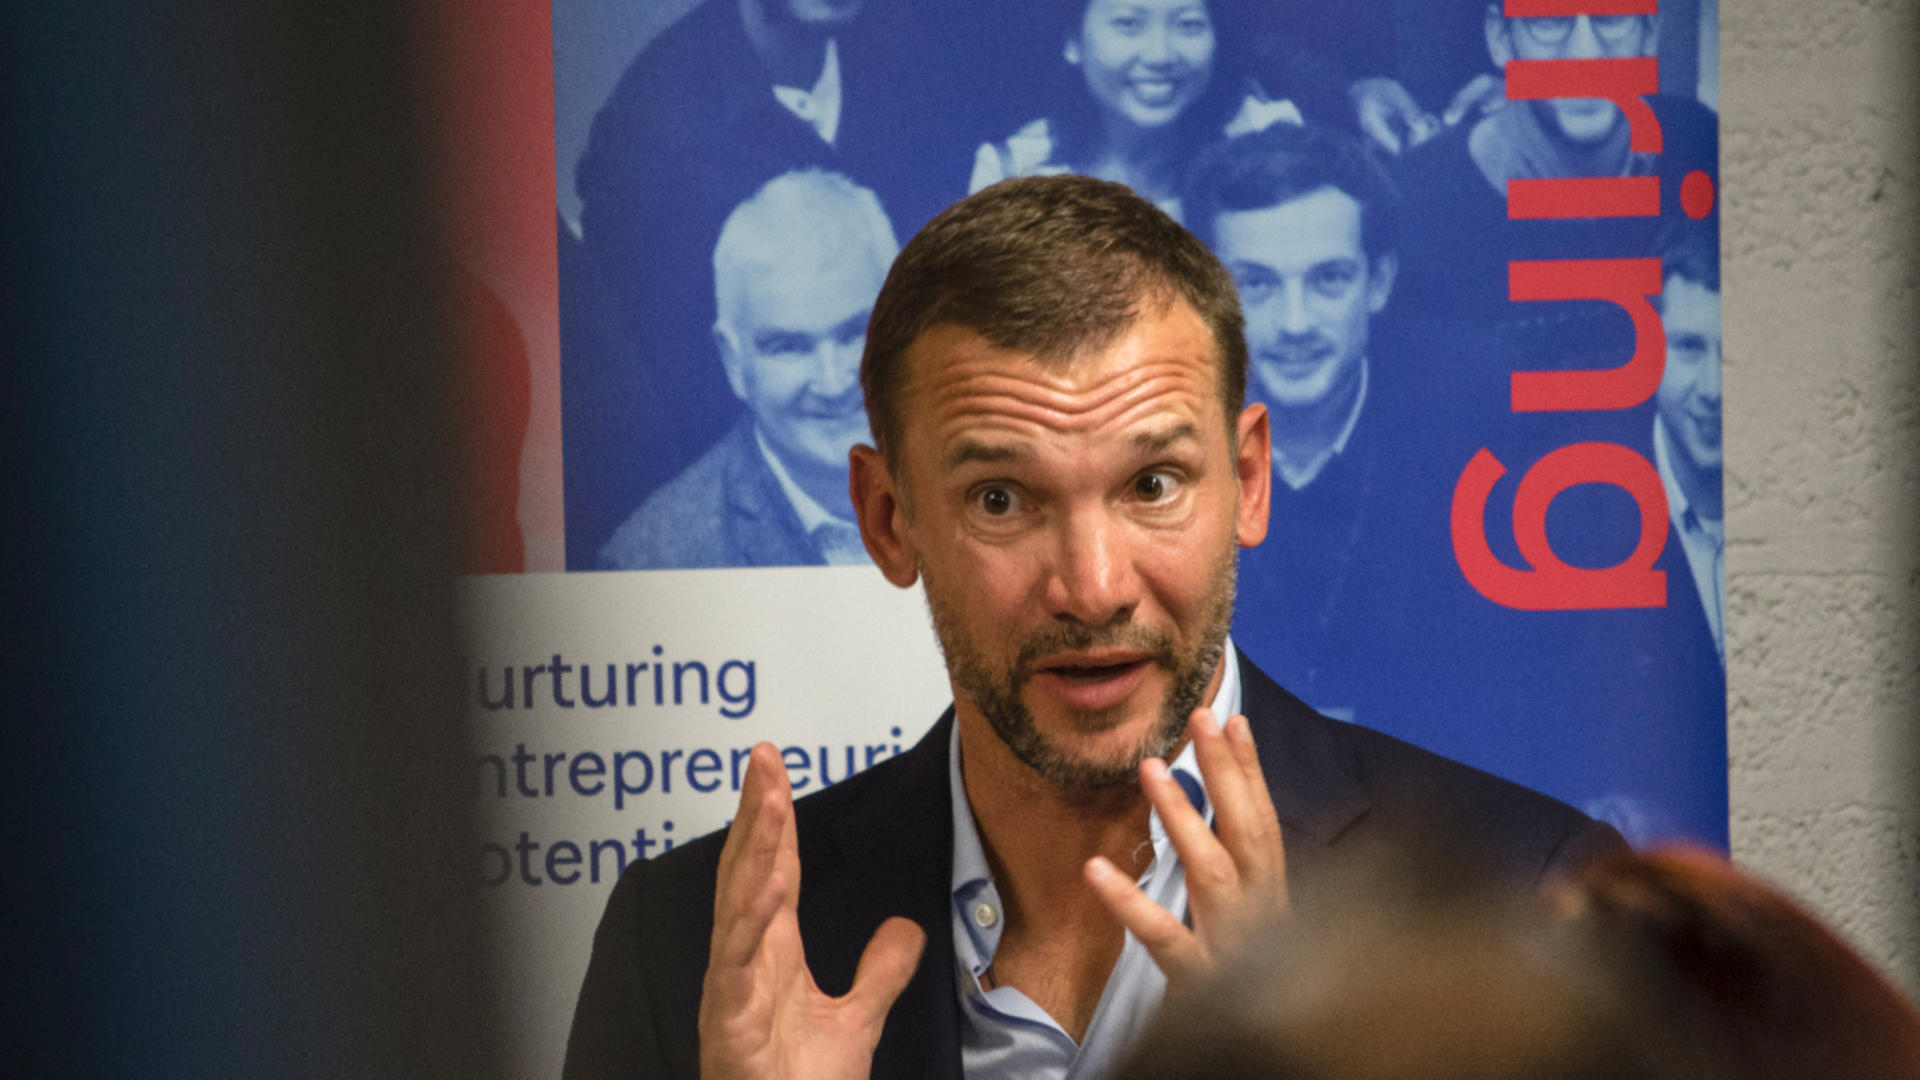 Andrii Shevchenko taking part in Q&A session